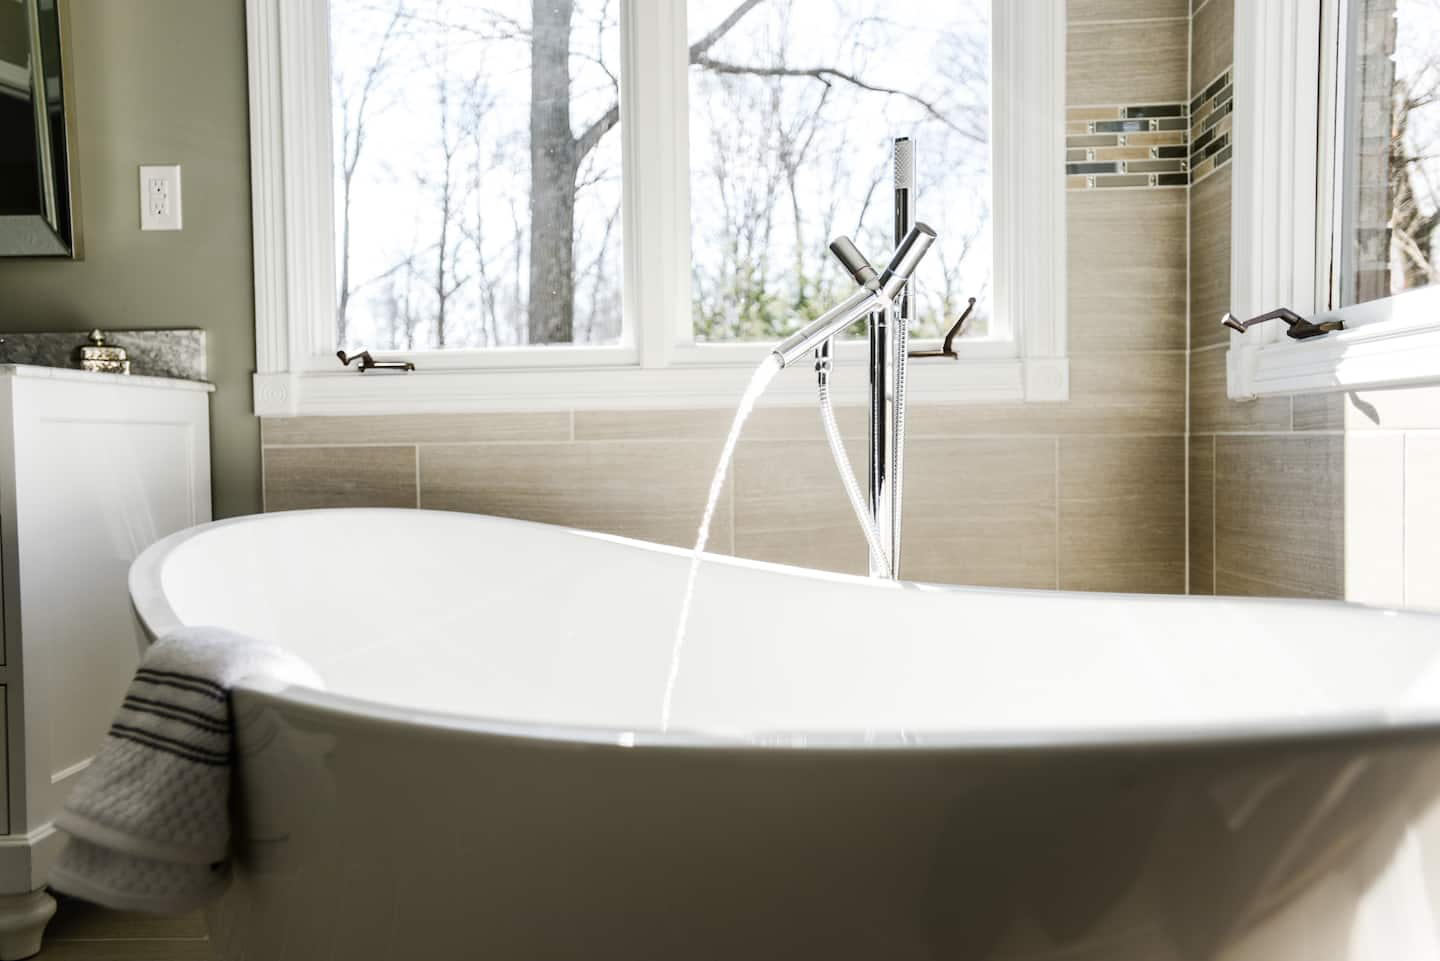 How Much Does Bathtub Replacement Cost Angie S List